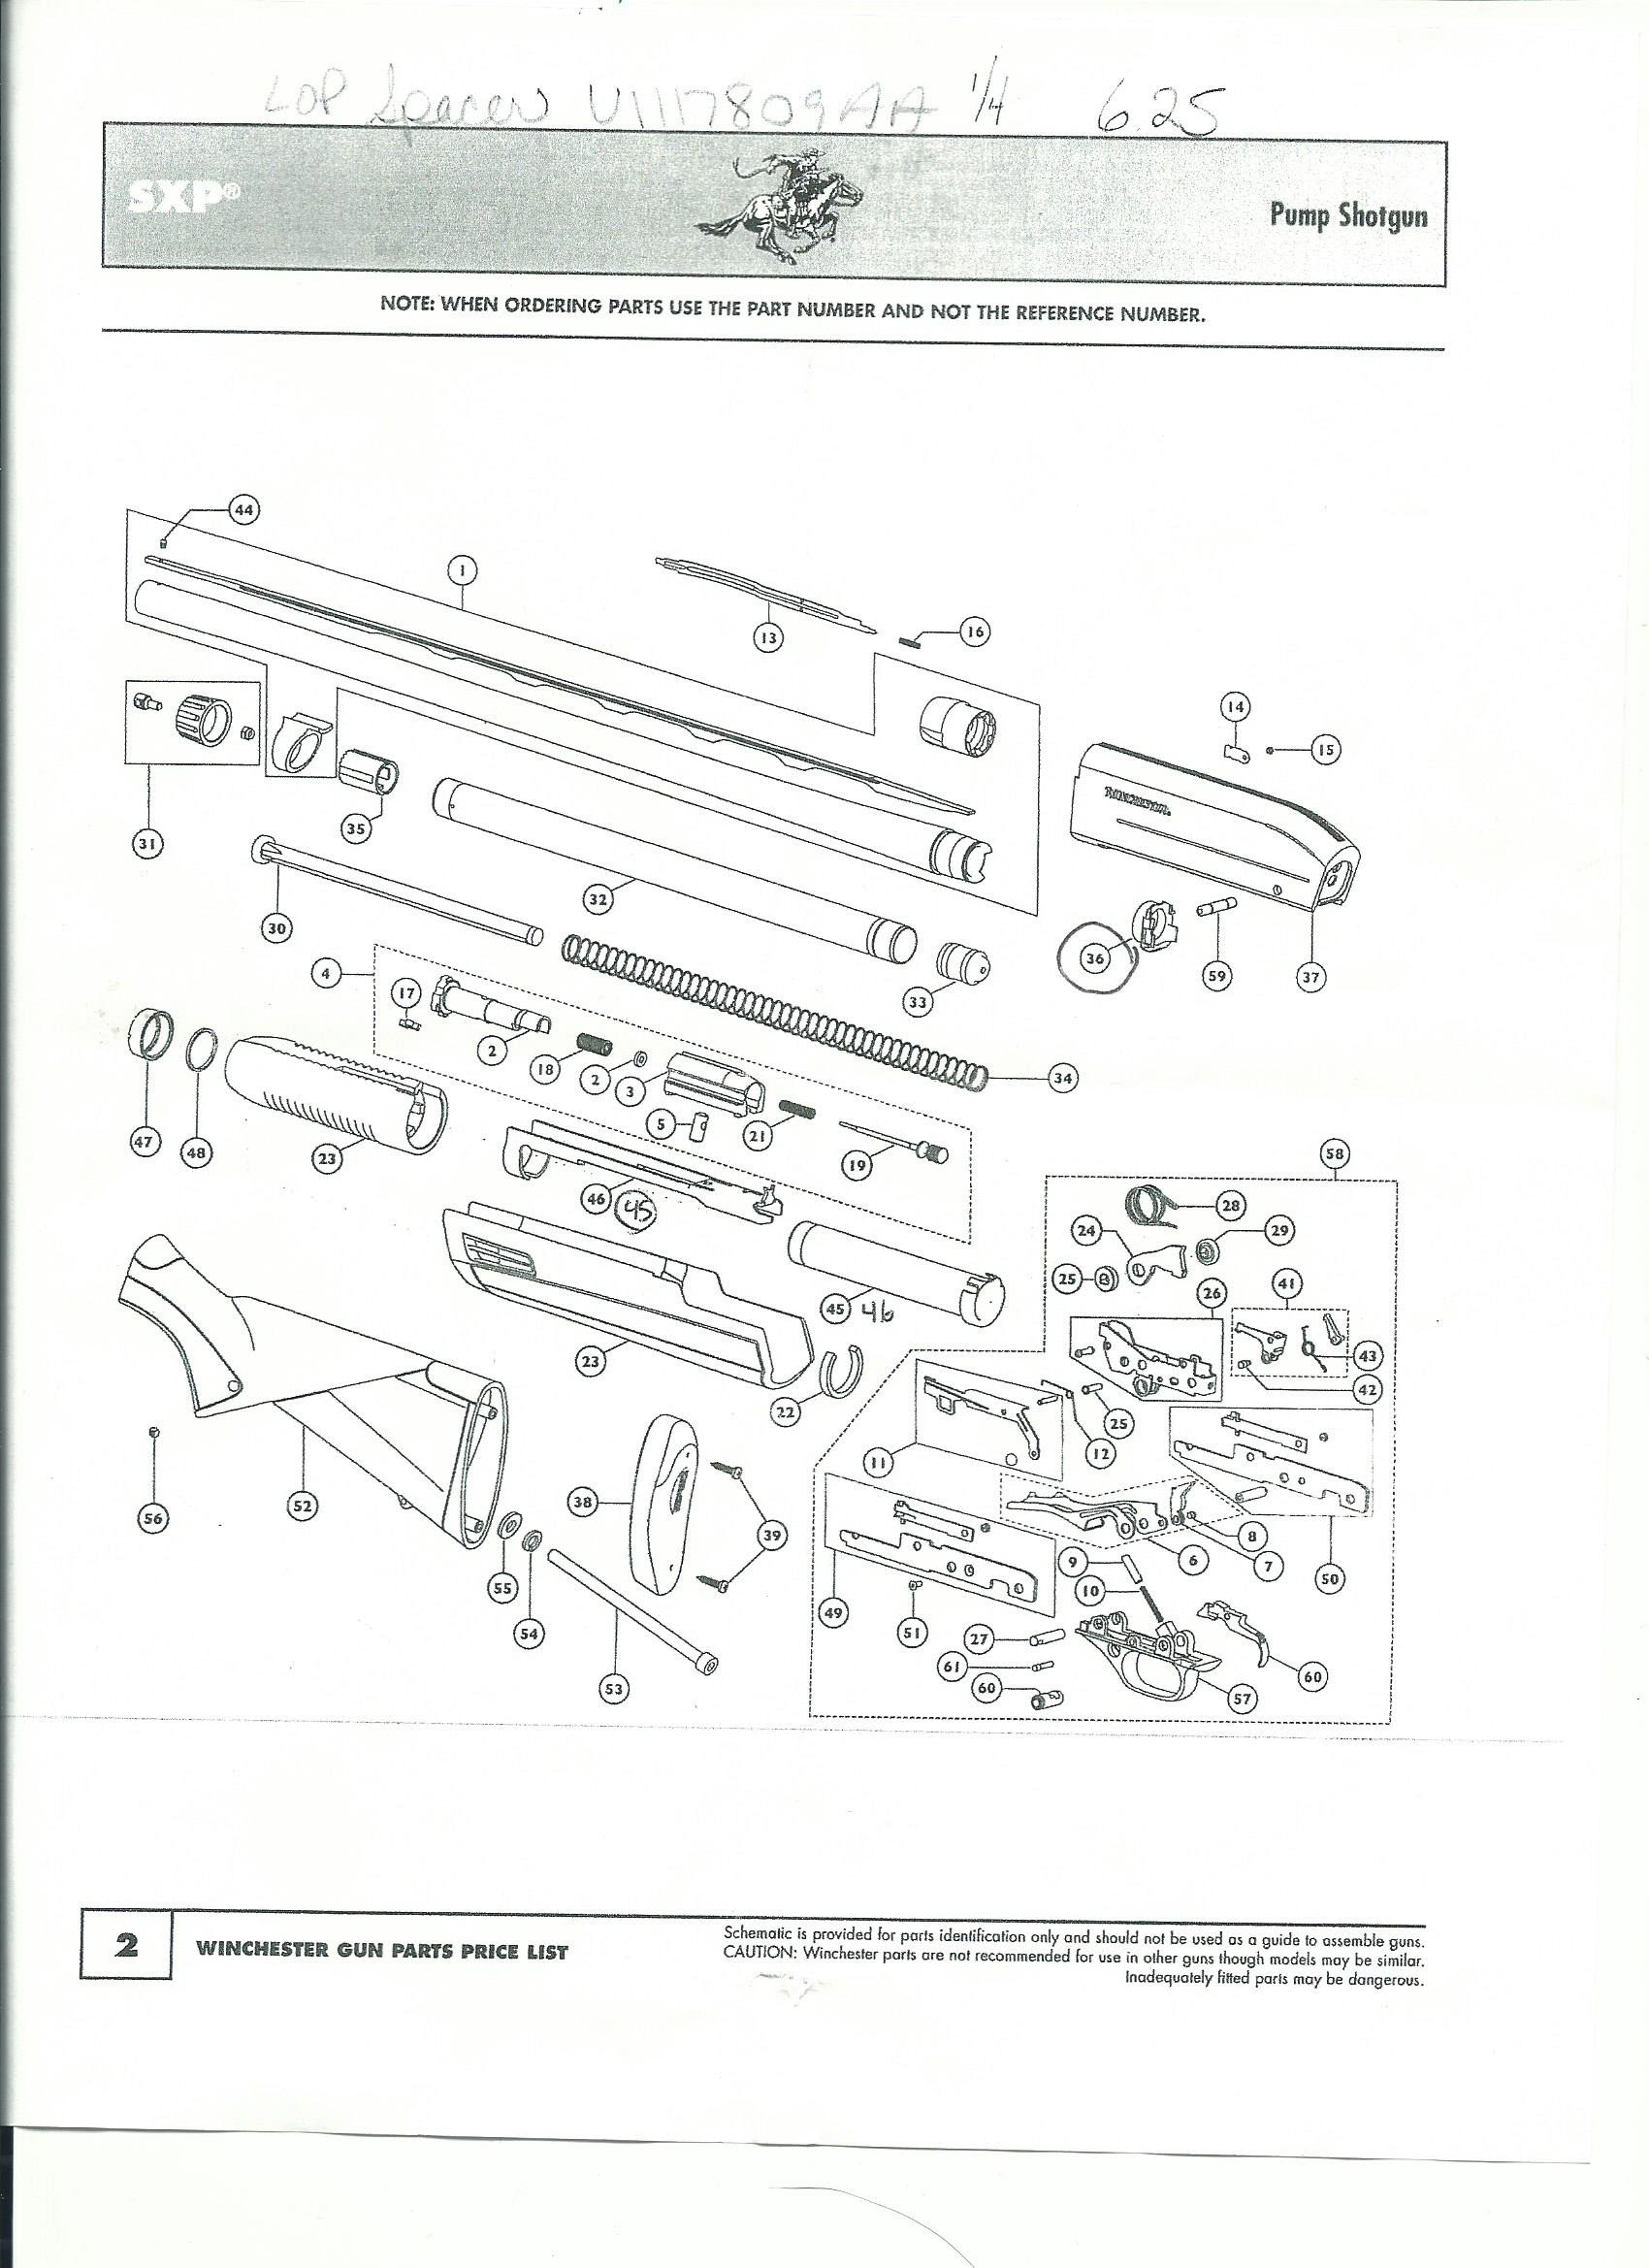 Winchester Pump Shotgun Sxp Parts Diagram